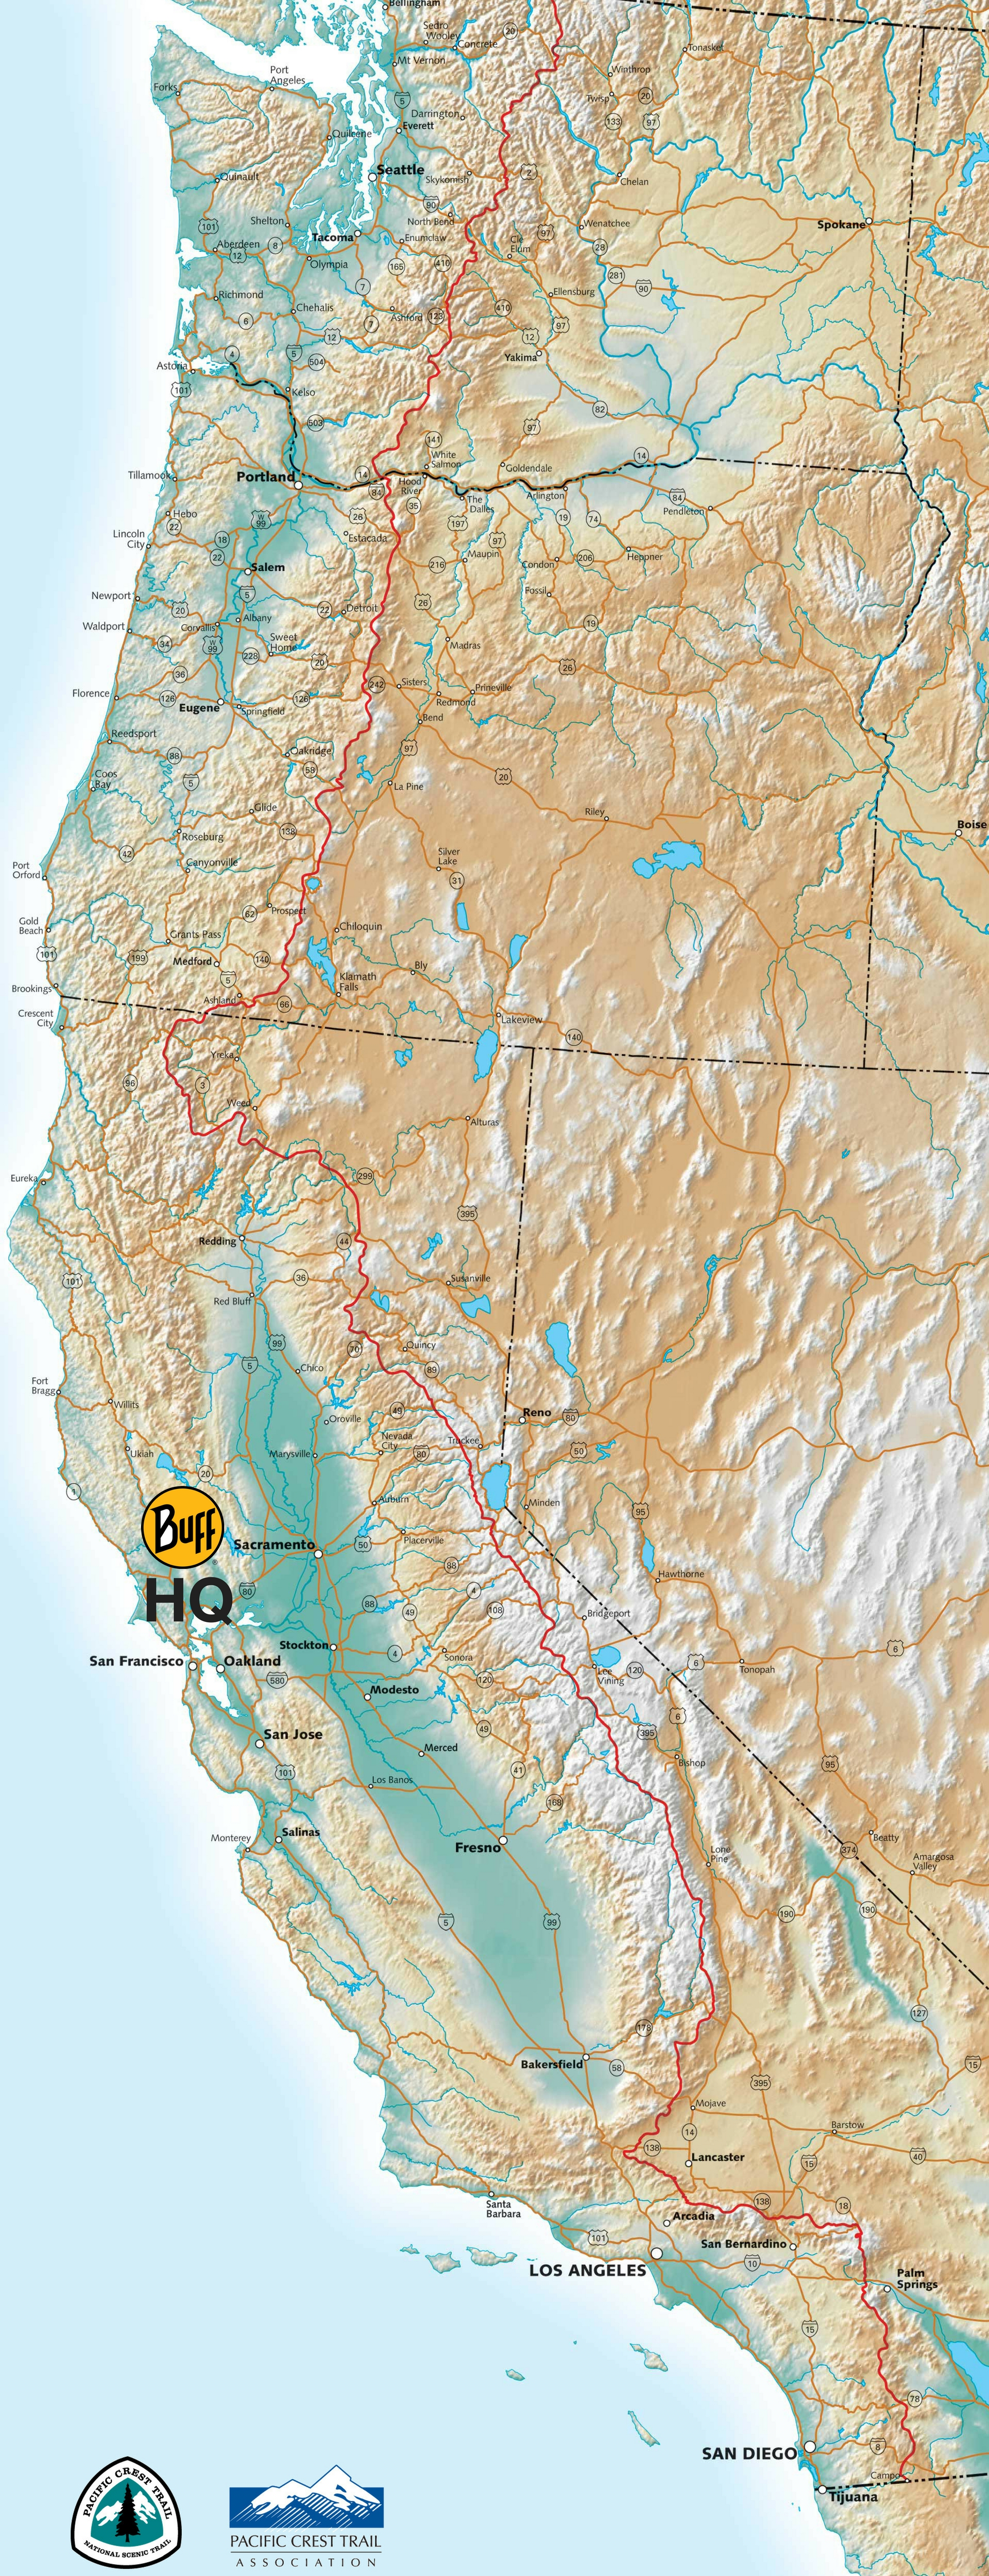 2017 Pacific Crest Trail Clean Up